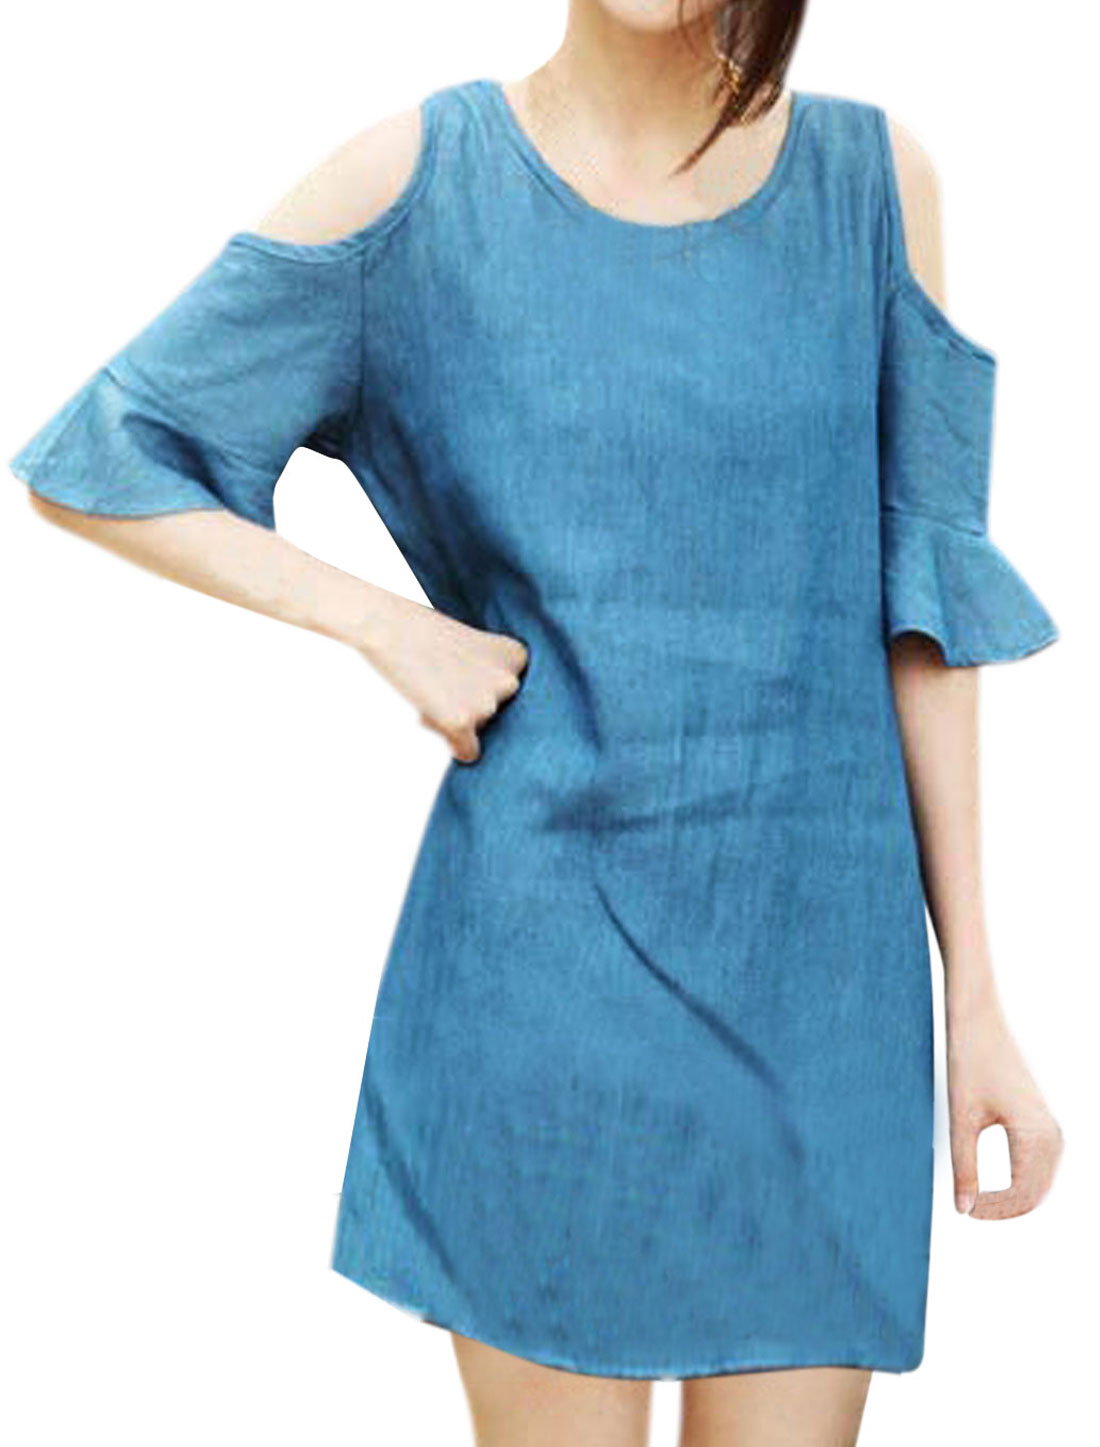 Women Round Neck Cut Out Shoulder Flouncing Cuff Tunic Dress Blue M